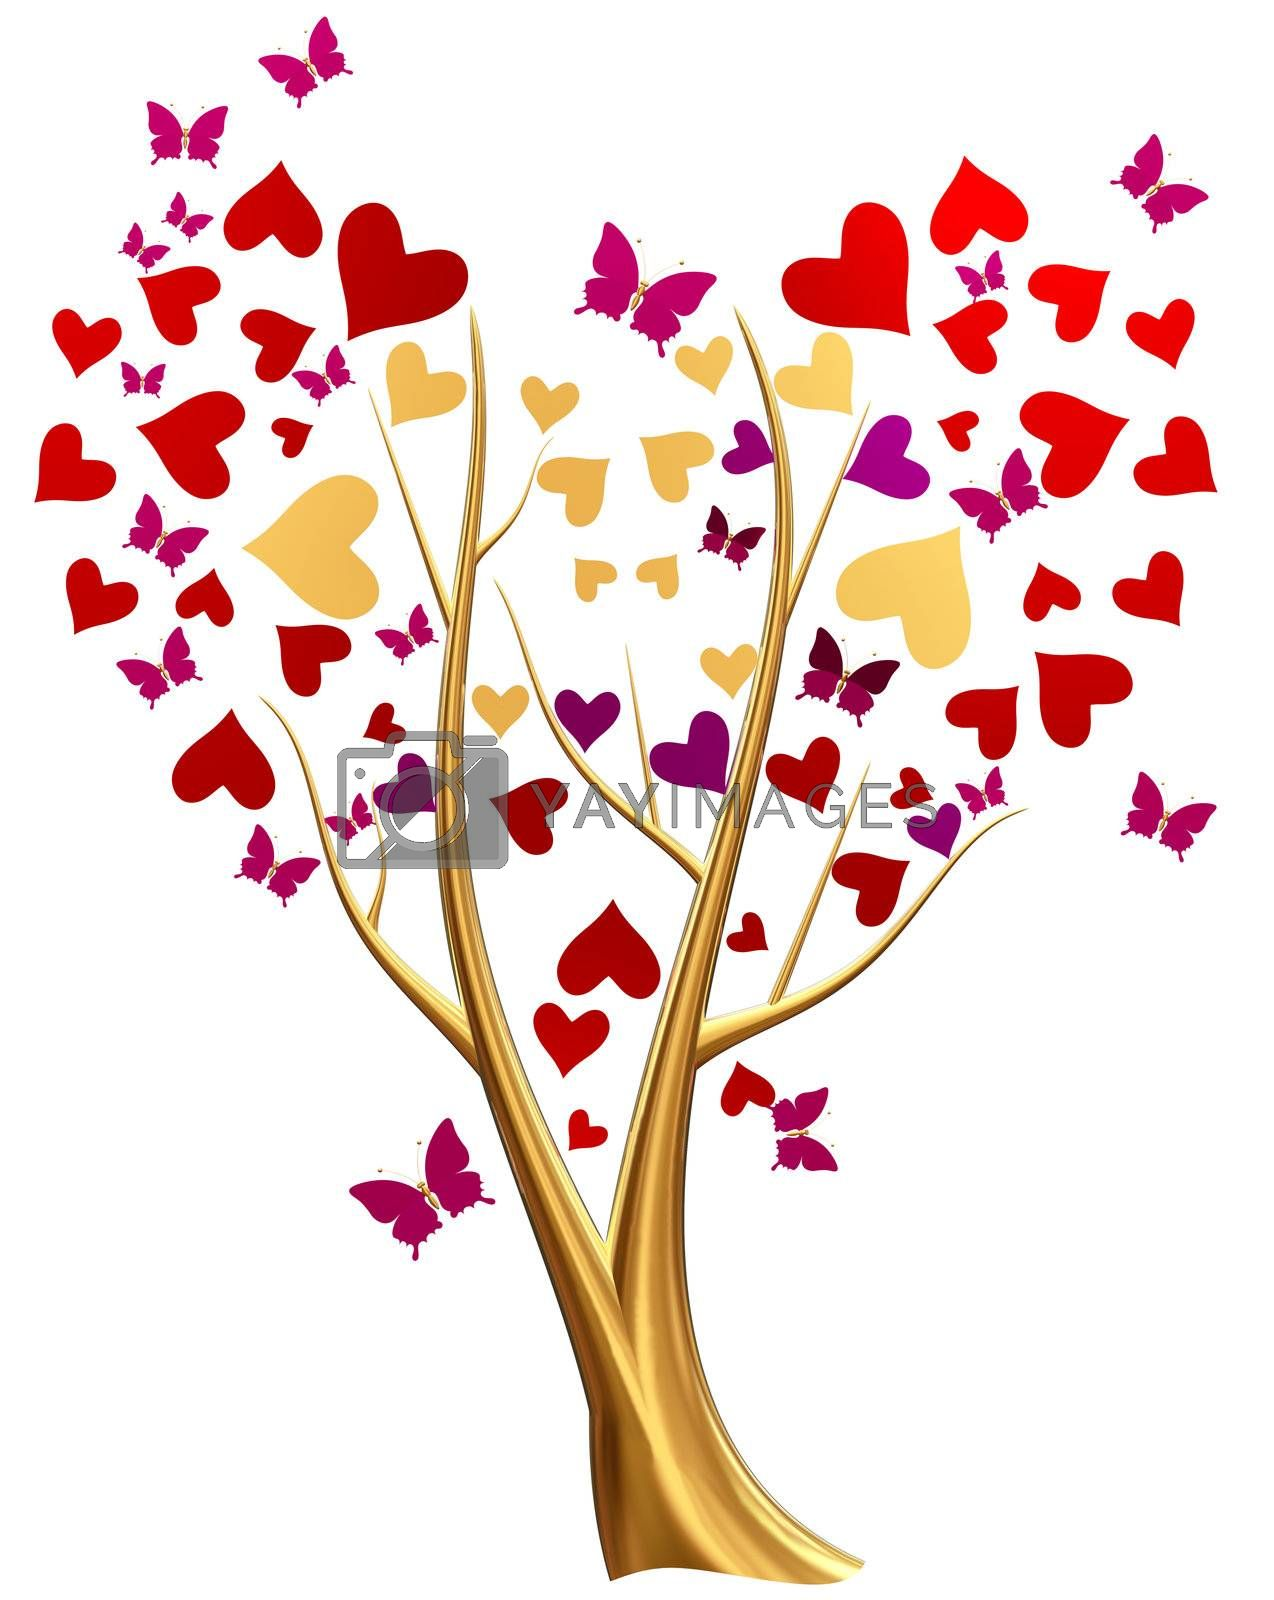 Beautiful golden tree with ruby red and lilac heart-shaped leafs, and flying butterflies around tree